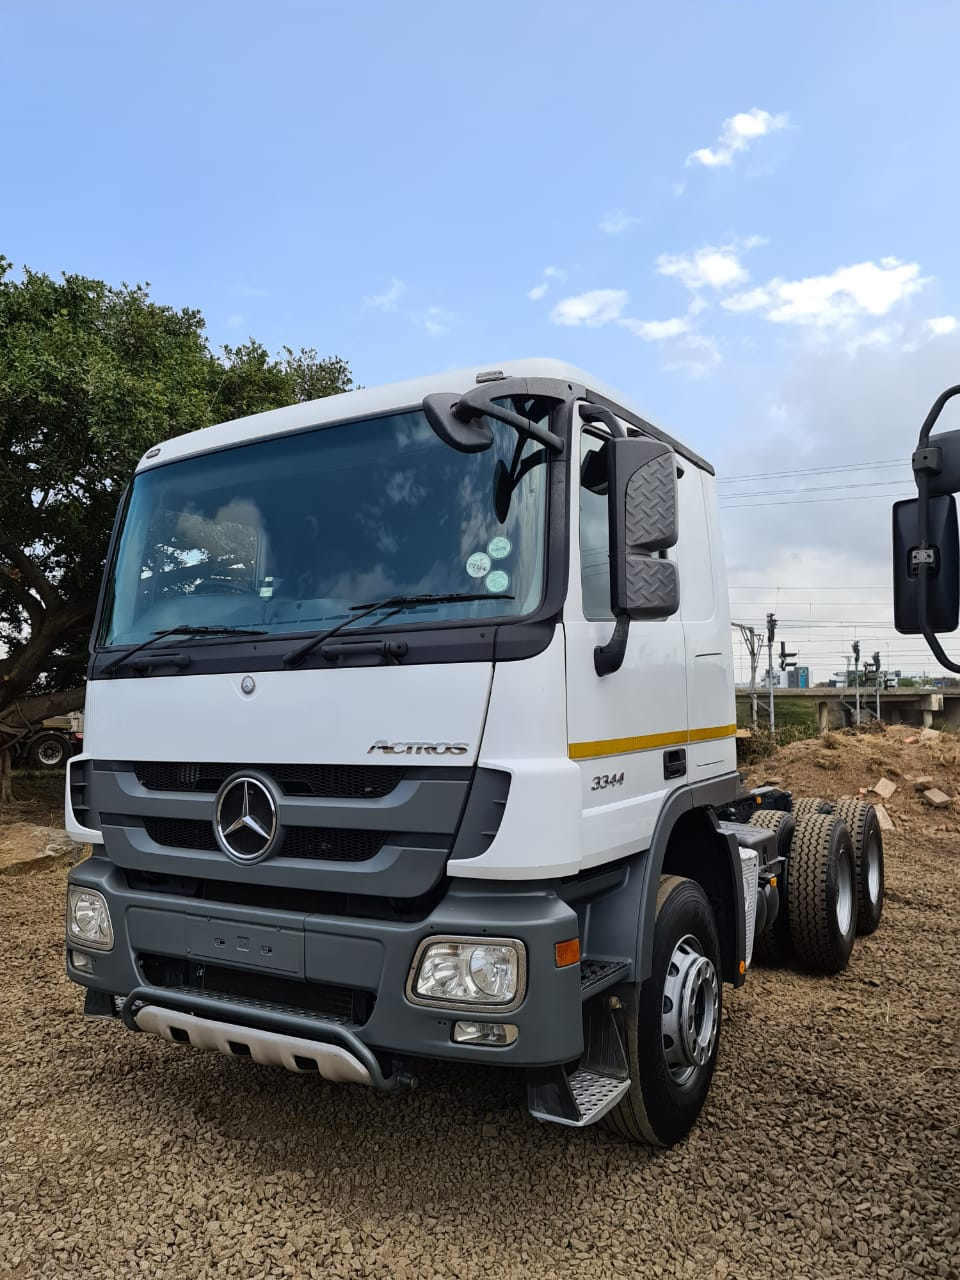 2013 MERCEDES BENZ ACTROS 3344 T/T Mp3